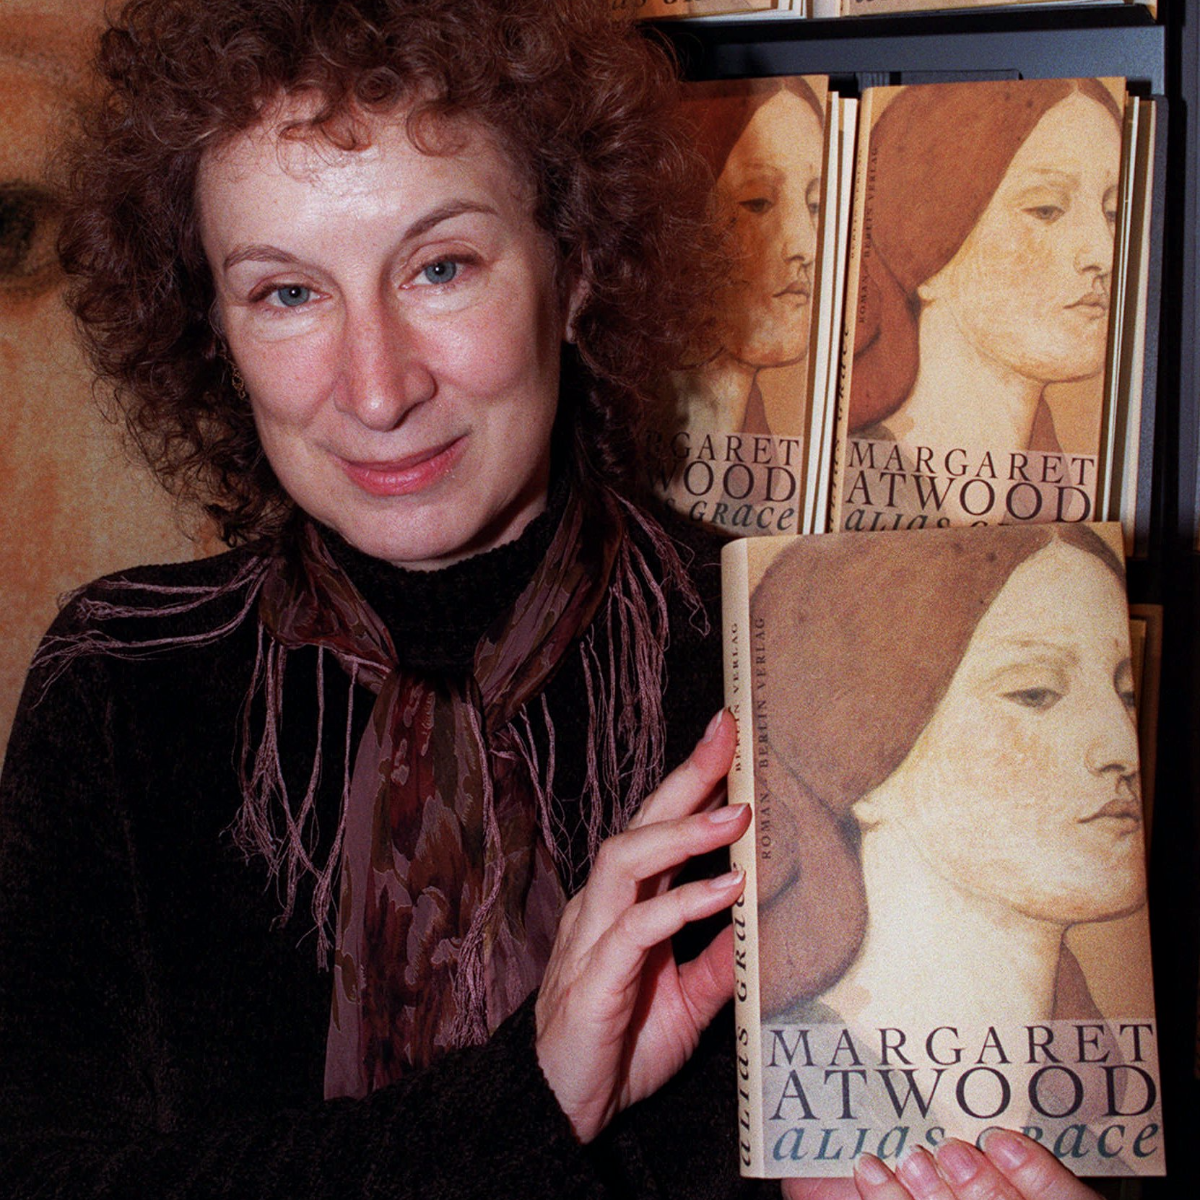 Canadian novelist Margaret Atwood showing off her new book 'Alias Grace' at the German Berlin Publishing House in Frankfurt, Germany, on October 2, 1996. (AP Photo/Heribert Proepper).